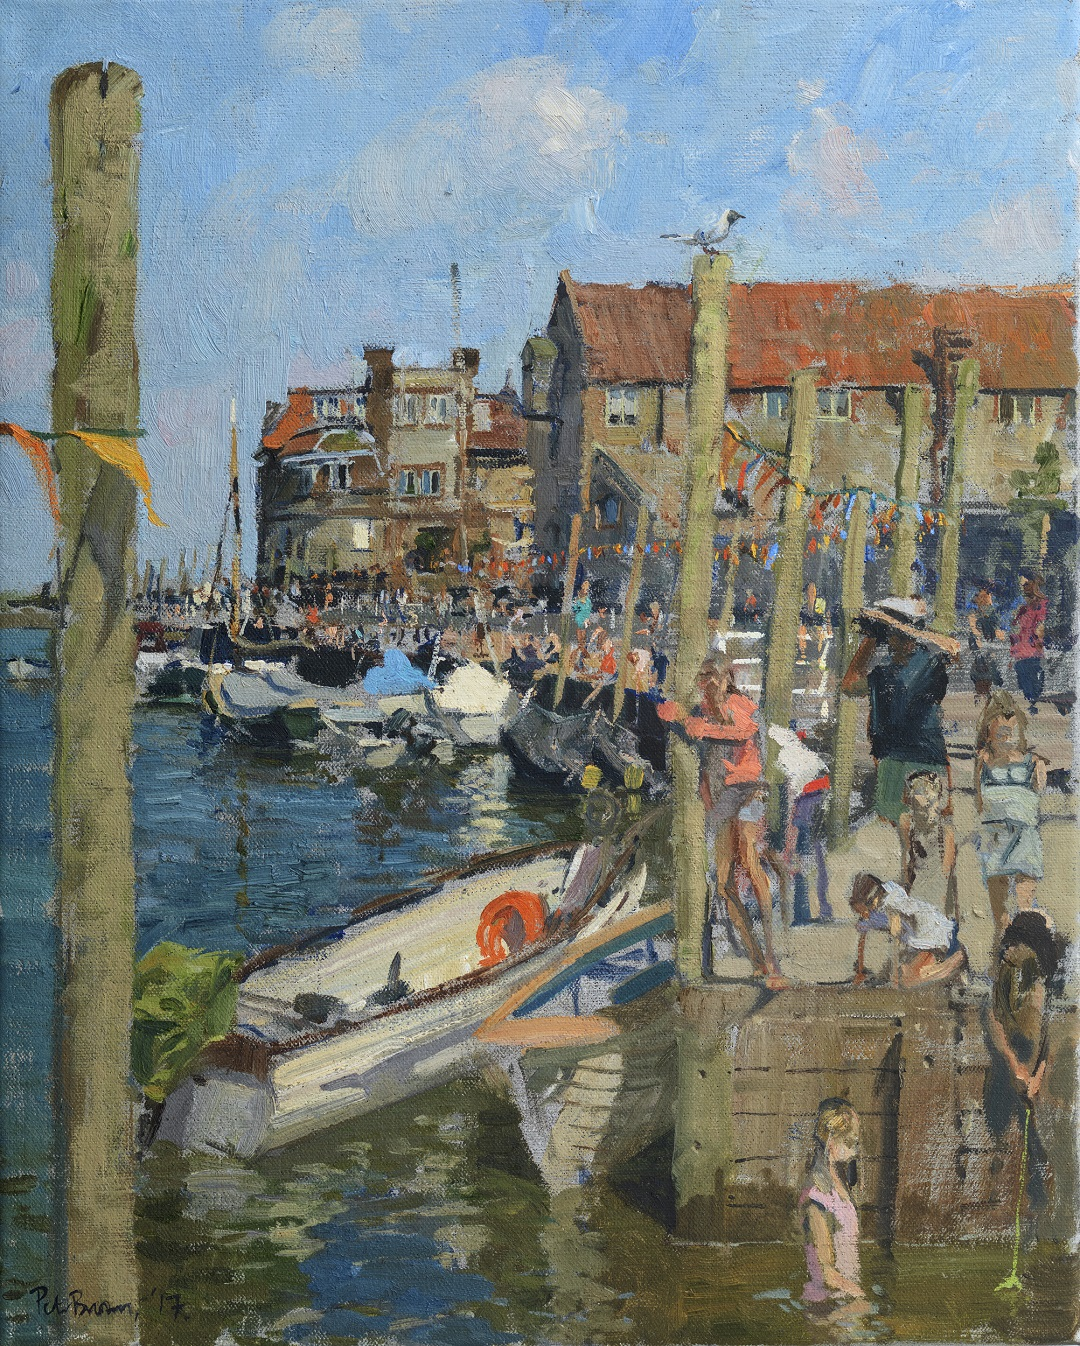 'Crabbing at Blakeney' Peter Brown Oil on canvas, 20 x 16, 2017